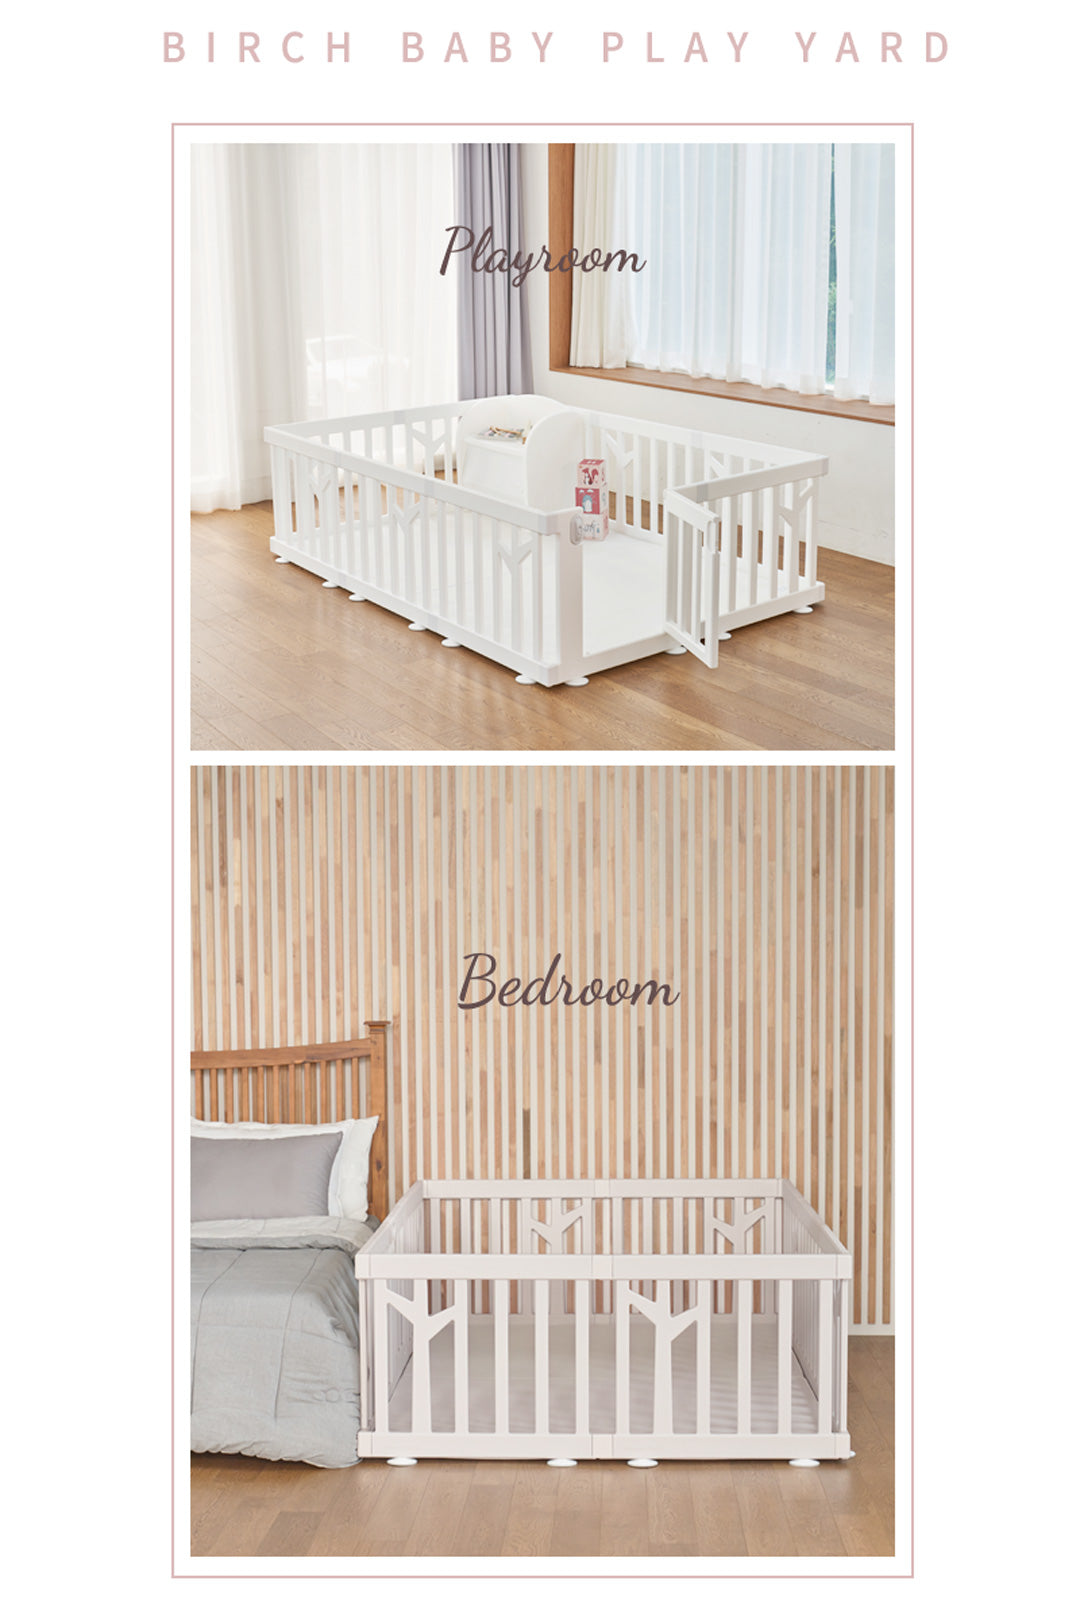 birch play yard fit anywhere in home